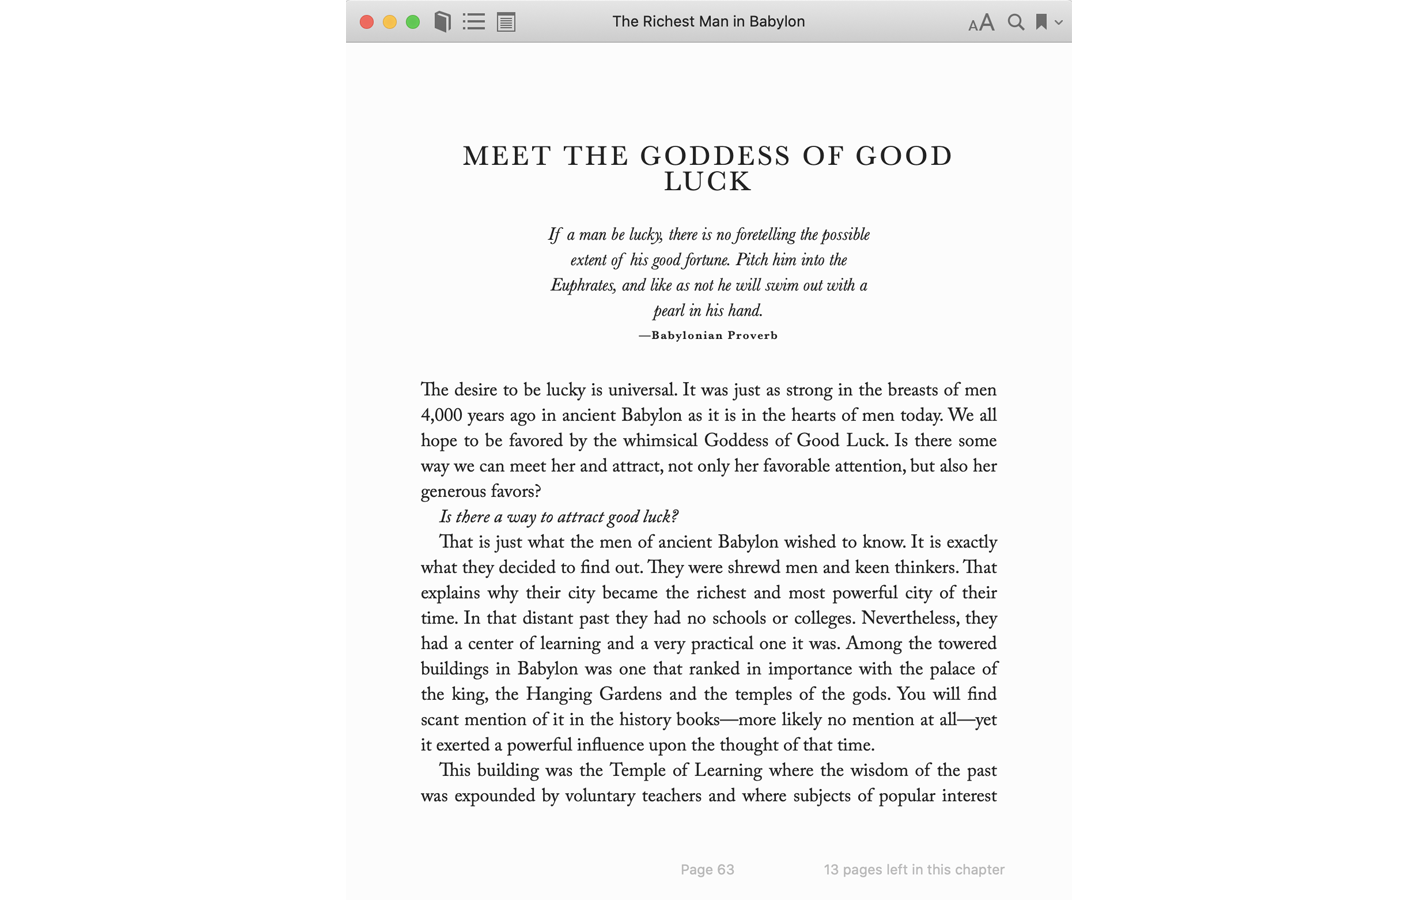 Page 63 for The Richest Man in Babylon